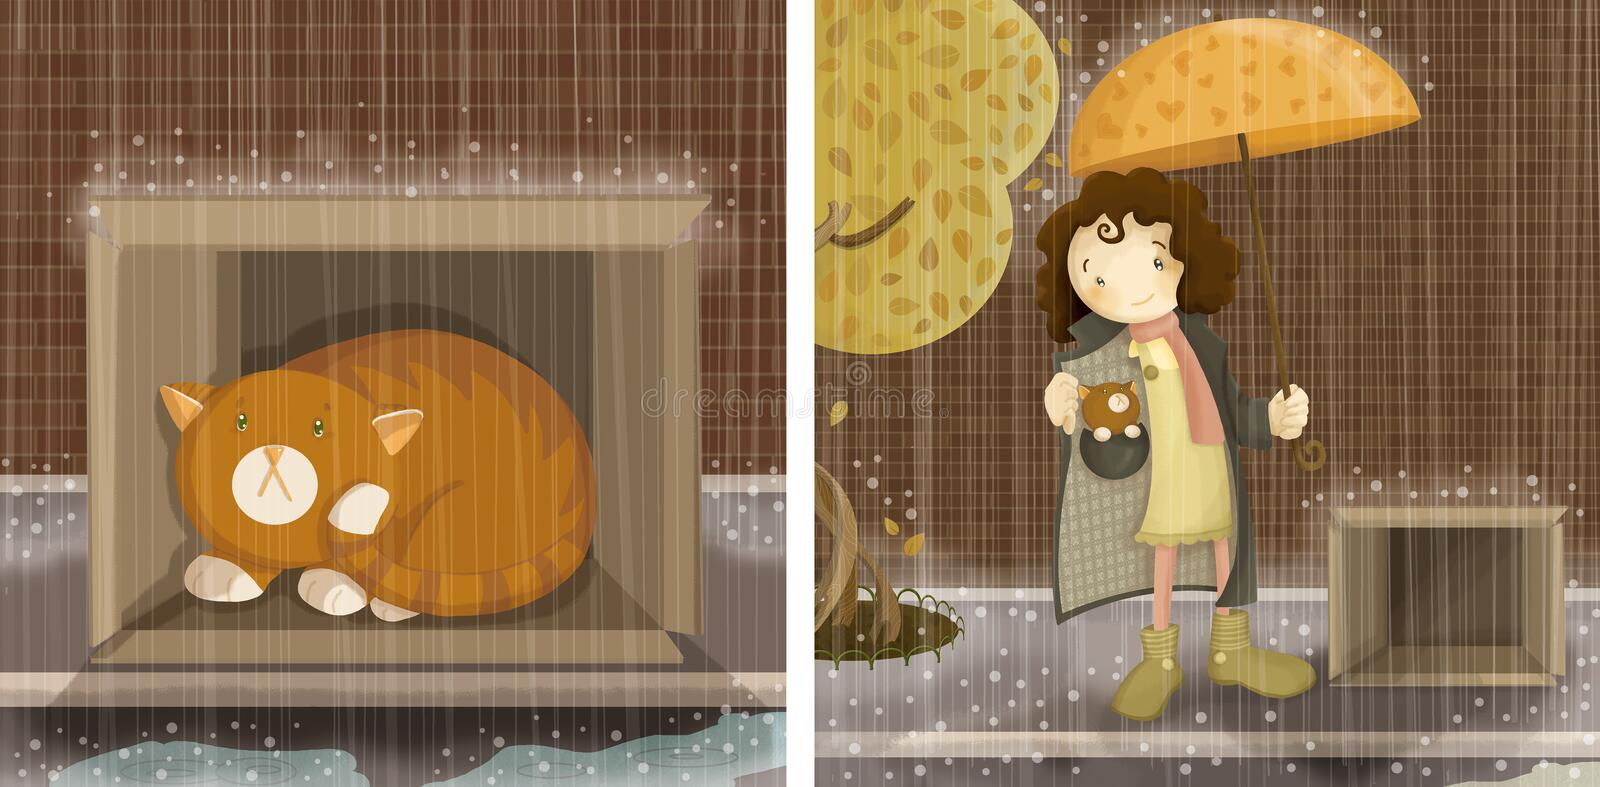 Rescue little cat. Set of two children style illustrations with a little frightened kitten left in a cardboard box under the pouring rain rescued by a cute